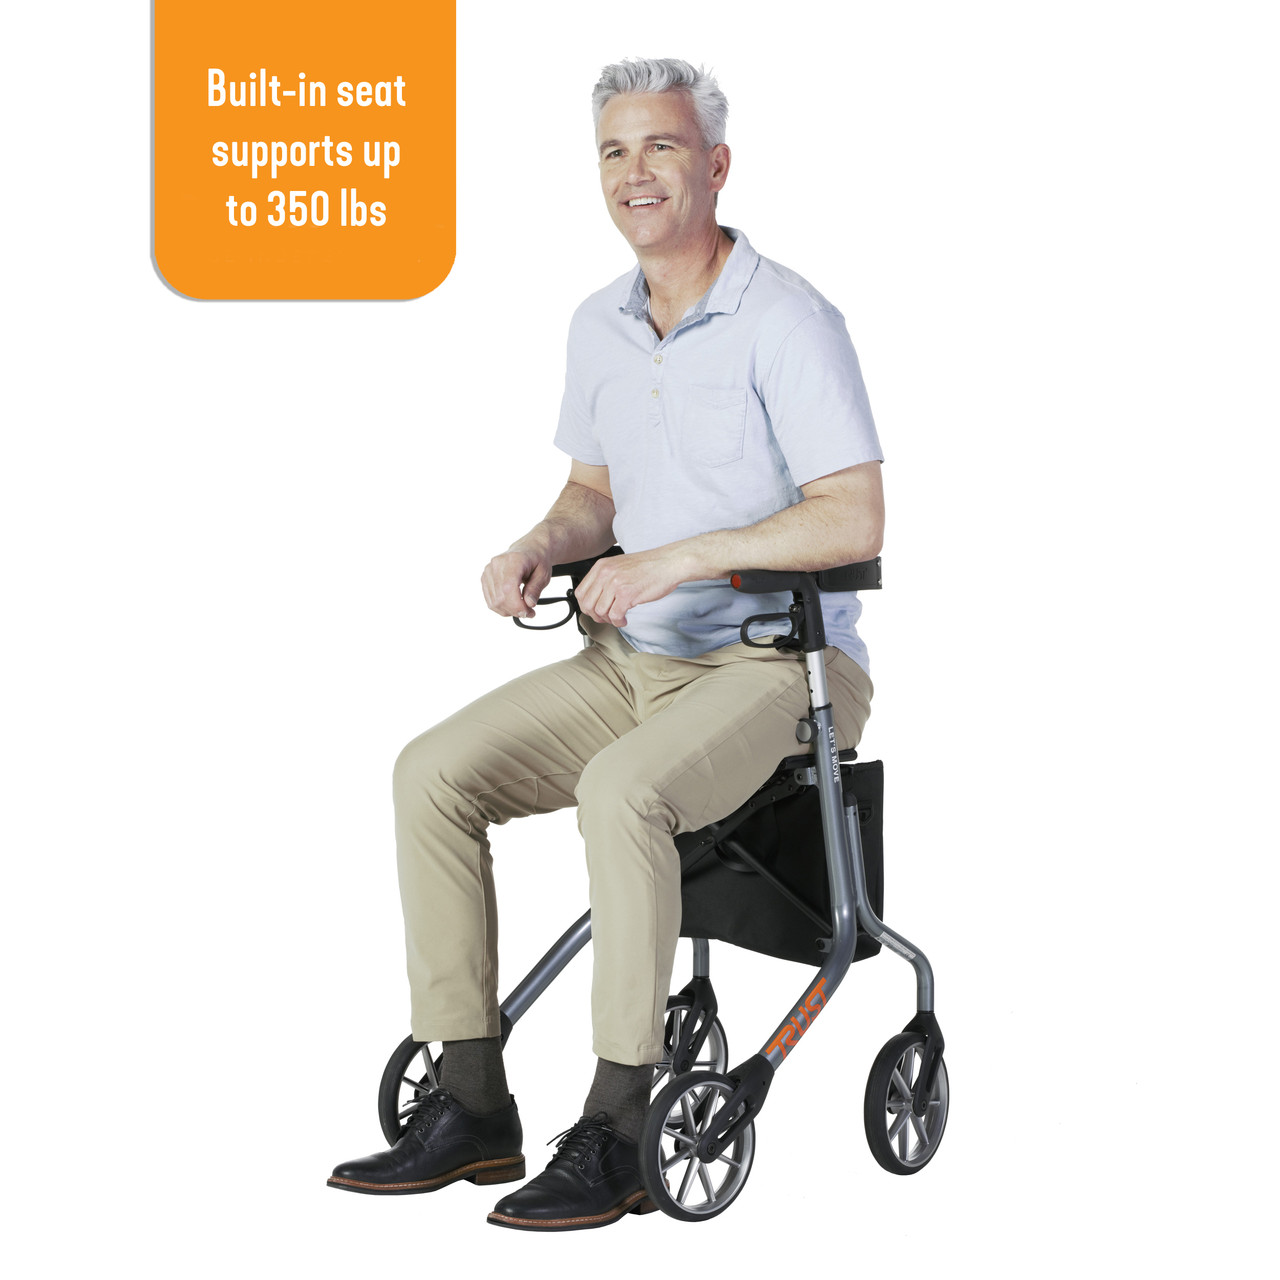 Let's Move Rollator with seat